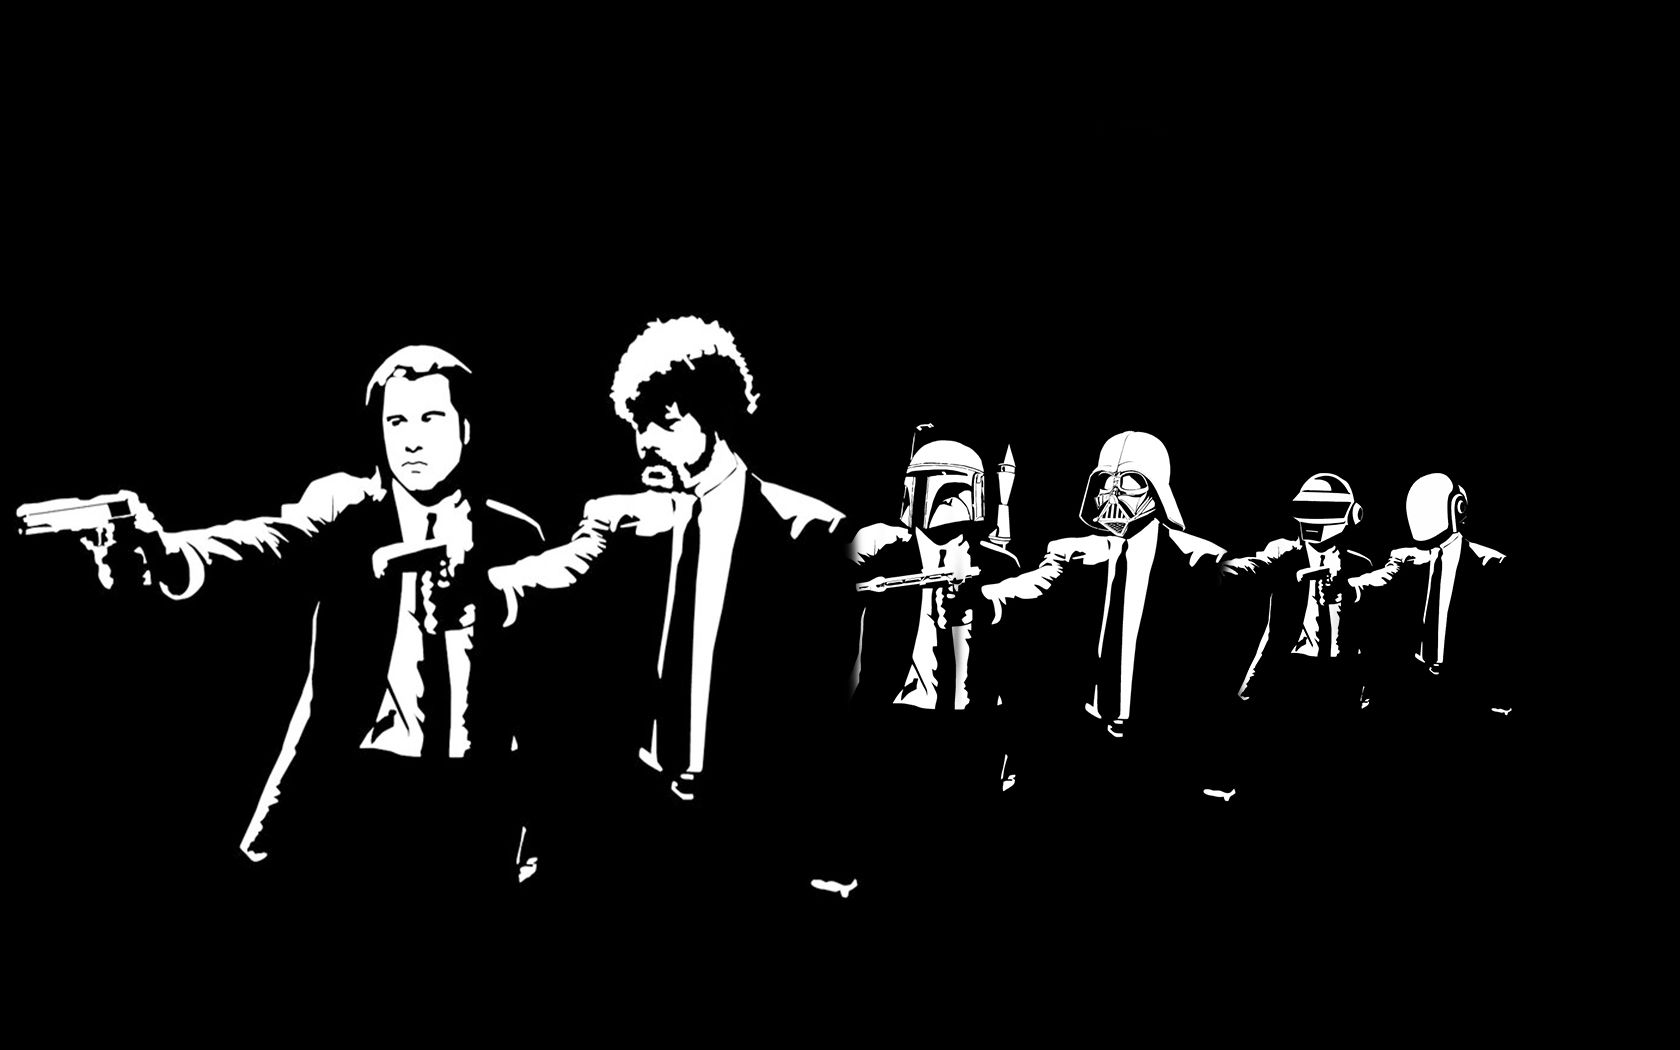 A Homemade Wallpaper For Fans Of Pulp Fiction Star Wars And Daft Punk 1680x1050 R Wallpapers Pulp Fiction Daft Punk Graffiti King